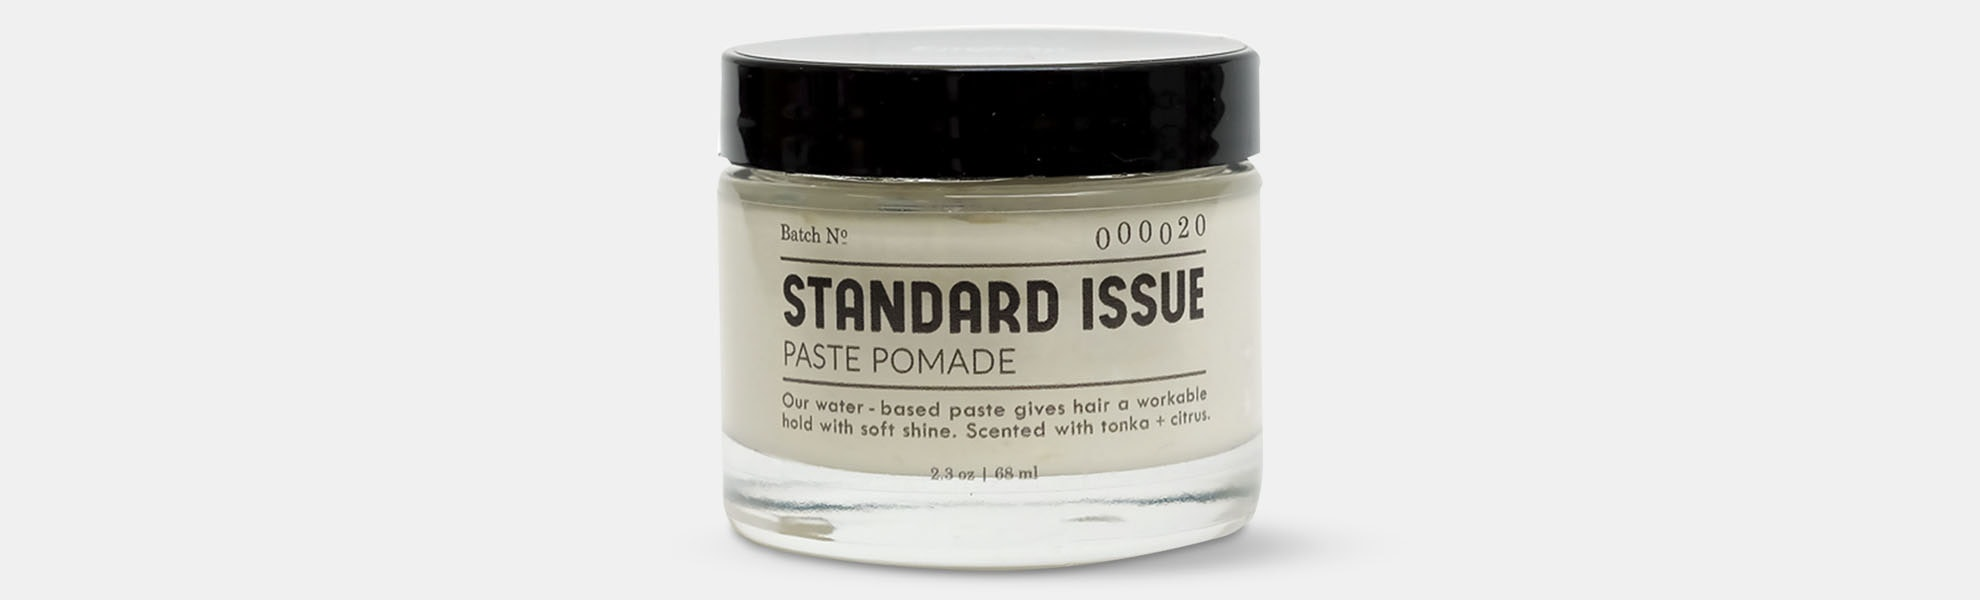 Empire Apothecary Standard Issue Hair Pomade